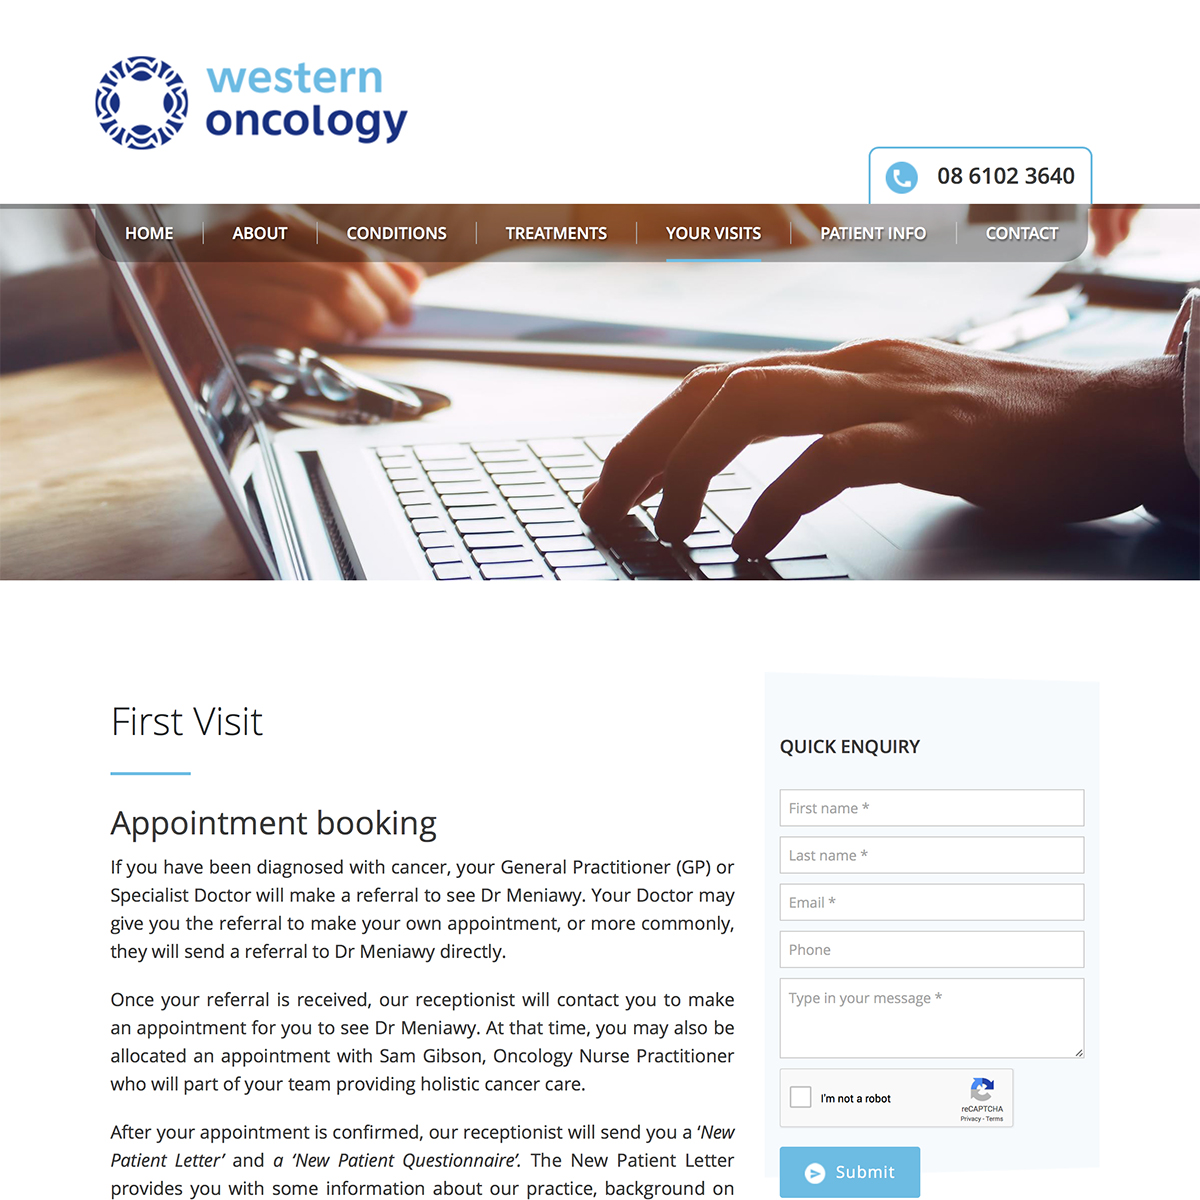 Western Oncology - First Visit